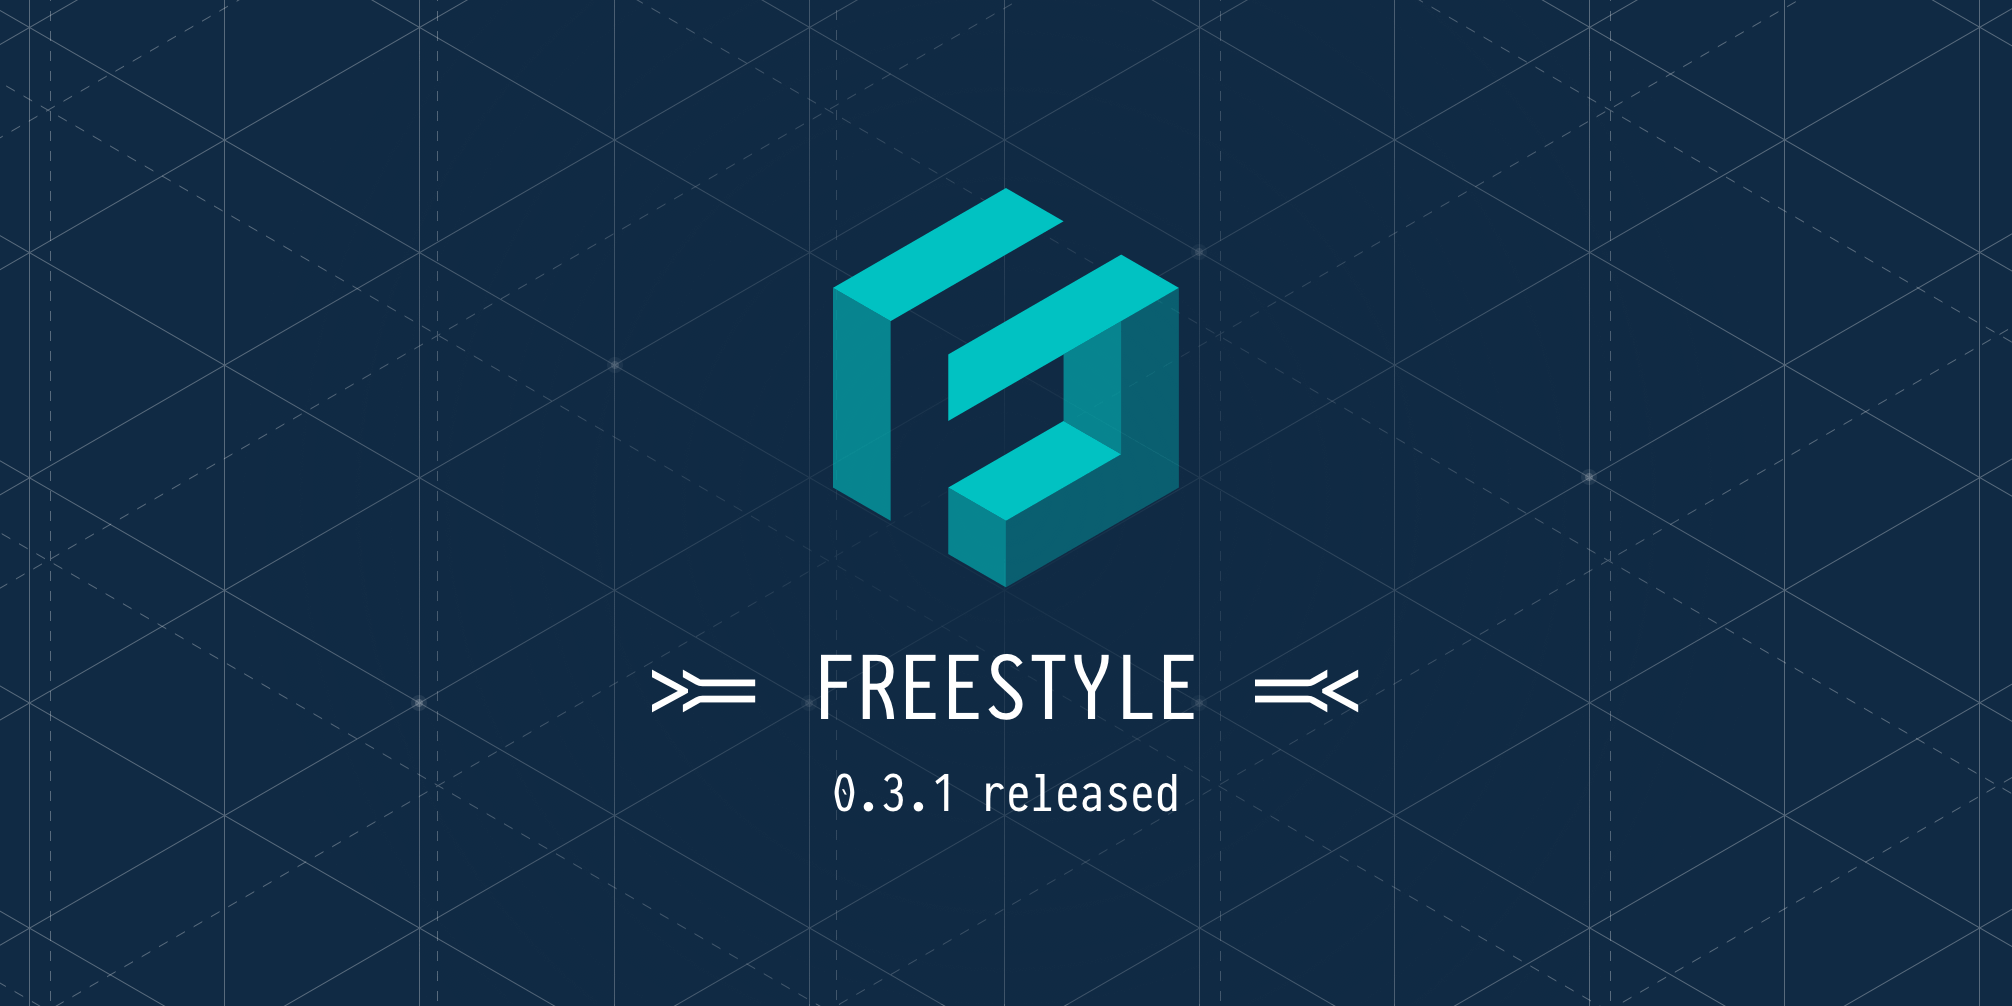 Freestyle 0.3.1 Released